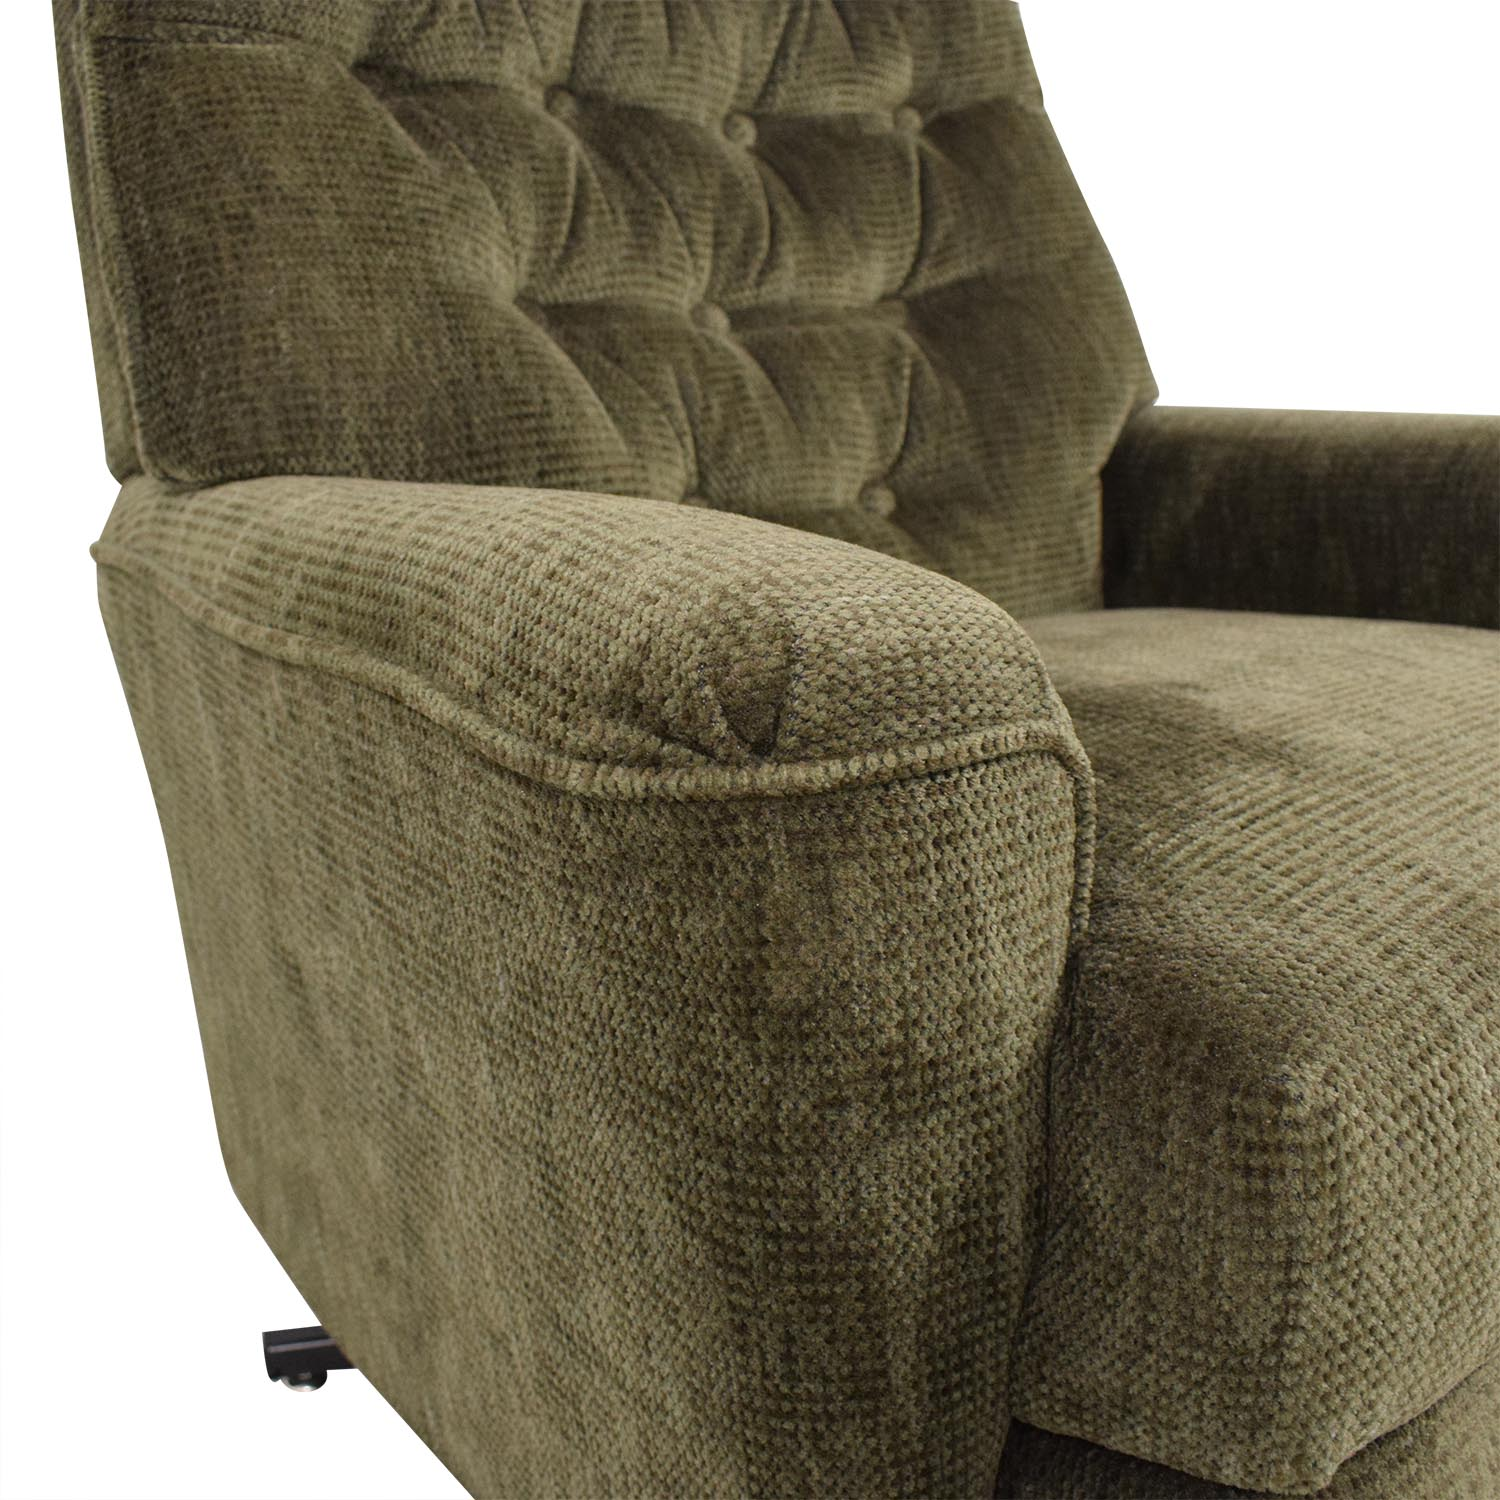 Best Chairs Best Chairs Power Lift Recliner used